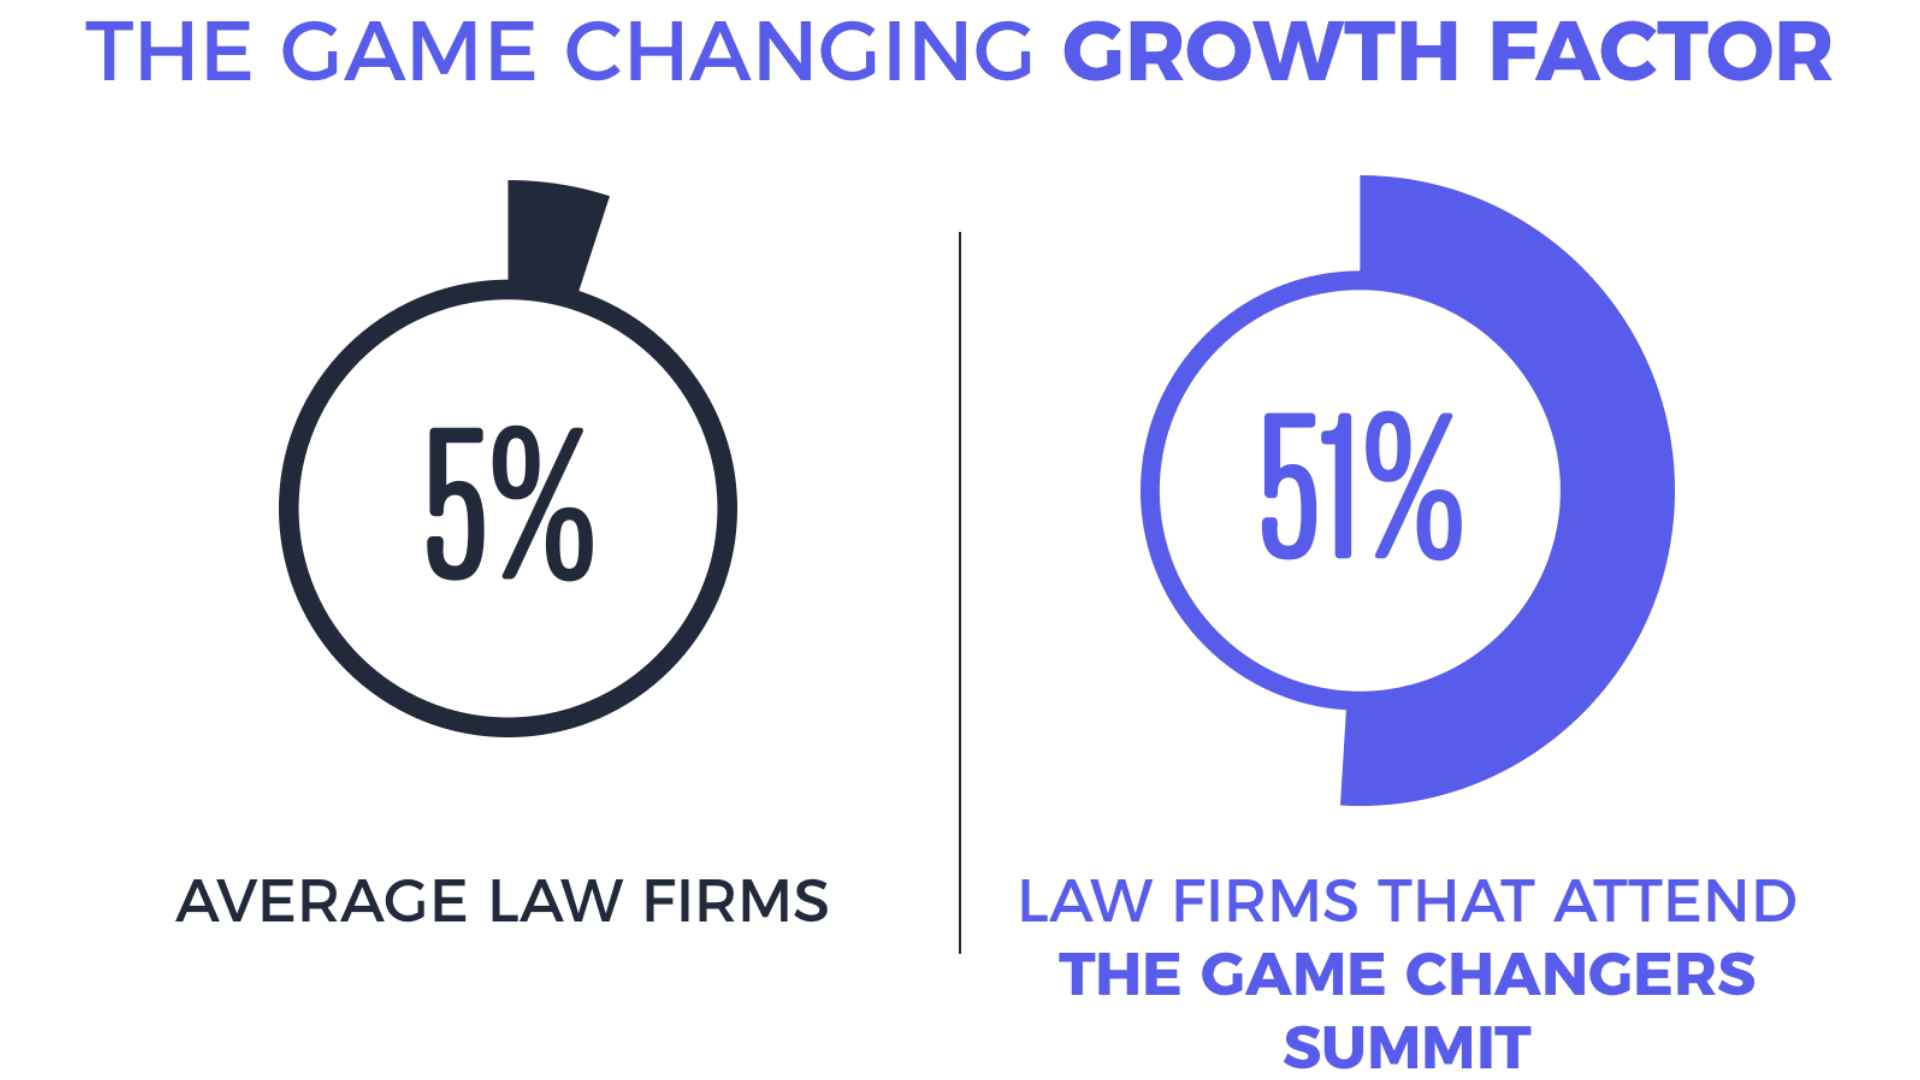 GAME CHANGING GROWTH FACTOR